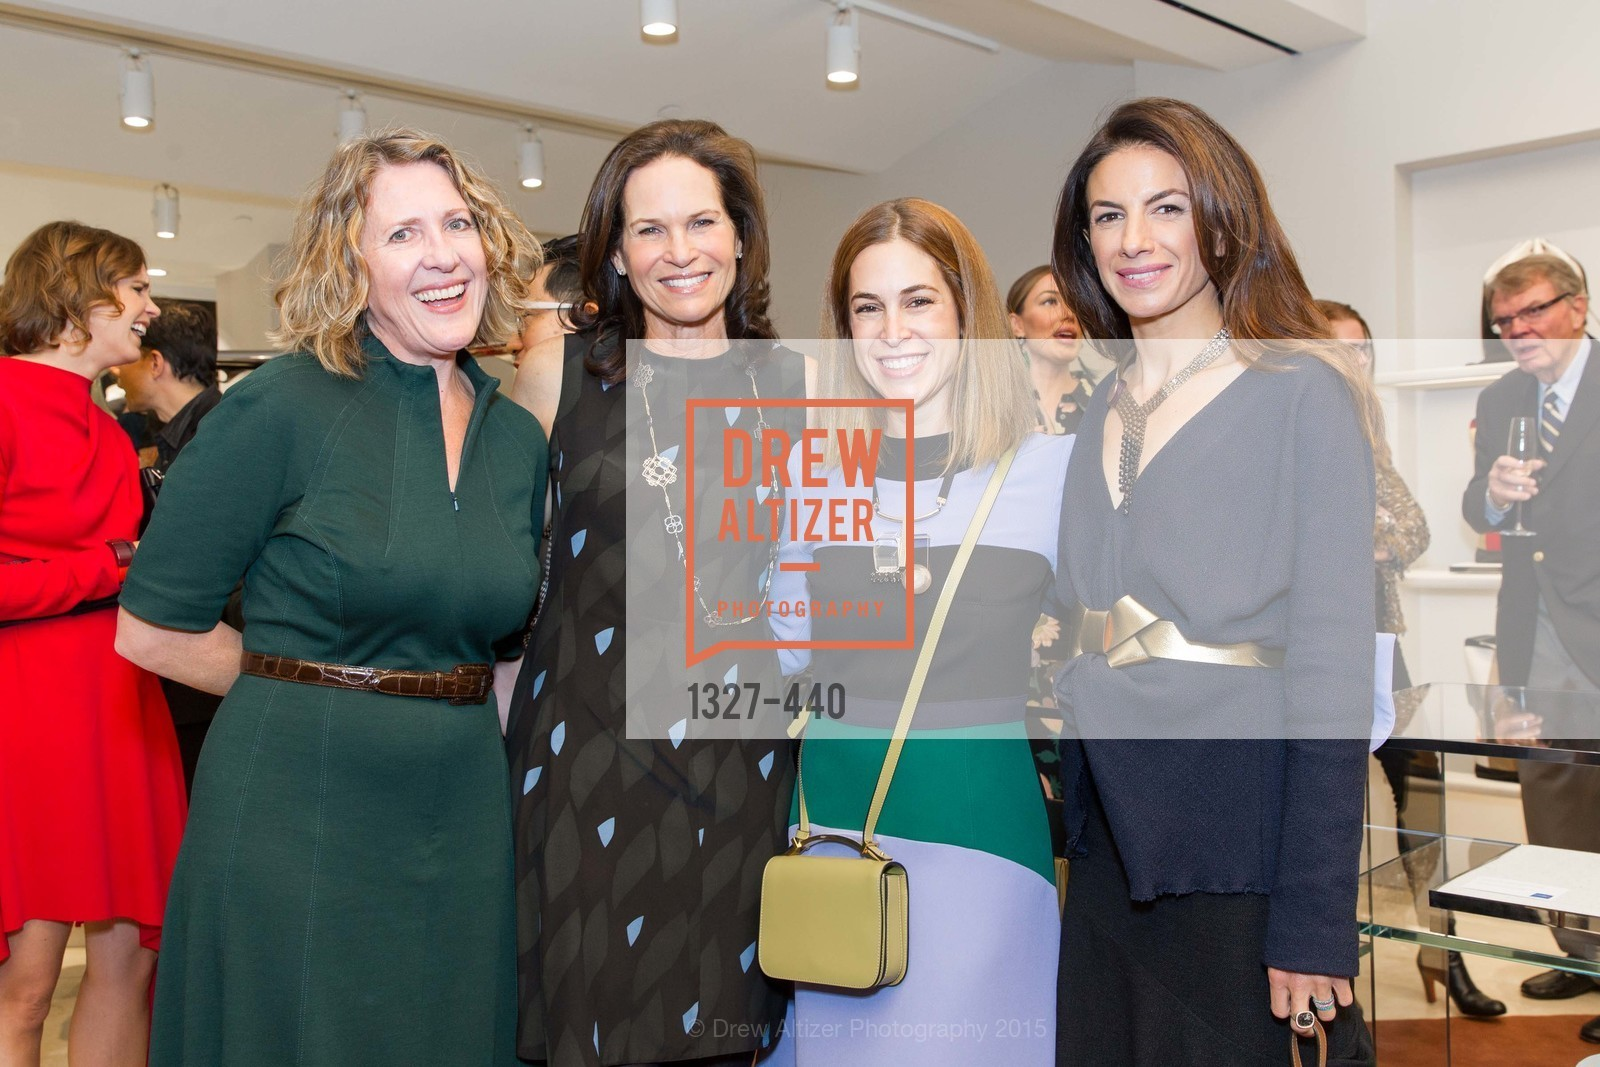 Shannon Jackson, Randi Fisher, Allison Pincus, Sabrina Buell, W Magazine and BAMPFA Celebrate the Opening of the Marni San Francisco Boutique with co-hosts Sabrina Buell and Alison Pincus, Marni San Francisco. 77 Maiden Lane, November 4th, 2015,Drew Altizer, Drew Altizer Photography, full-service agency, private events, San Francisco photographer, photographer california